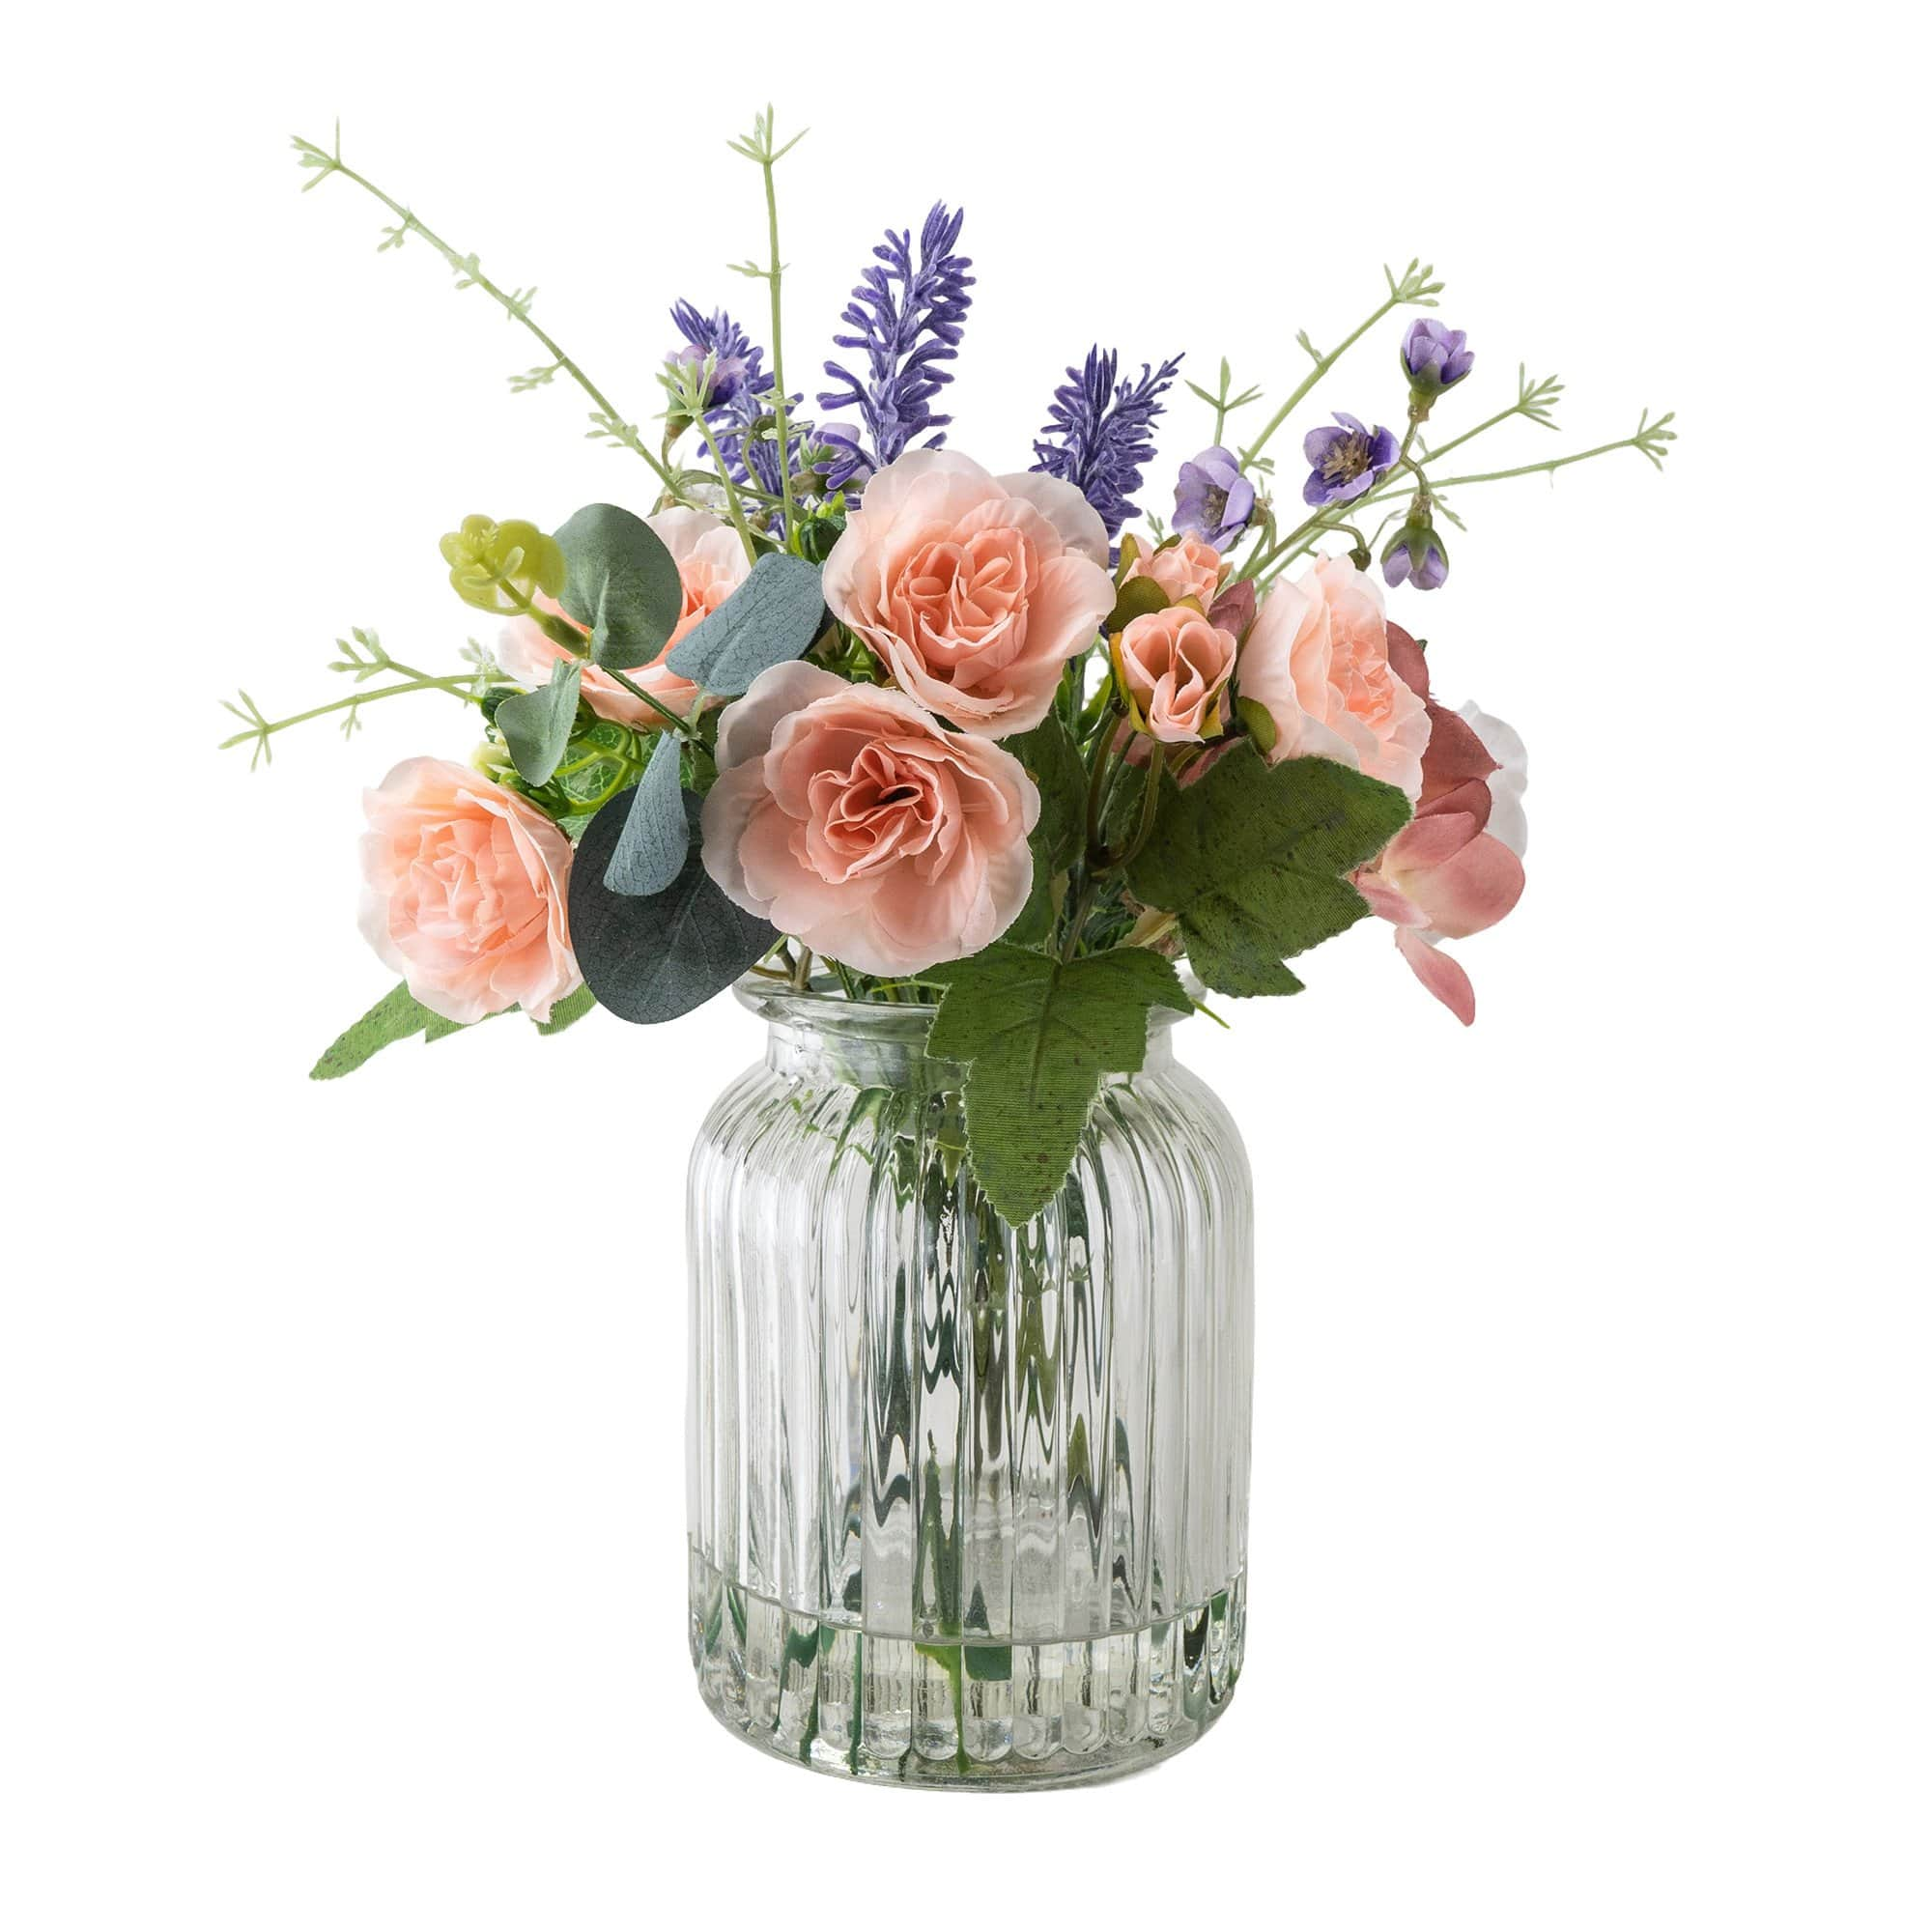 Faux Floral Arrangement in Clear Textured Glass Vase 6PK